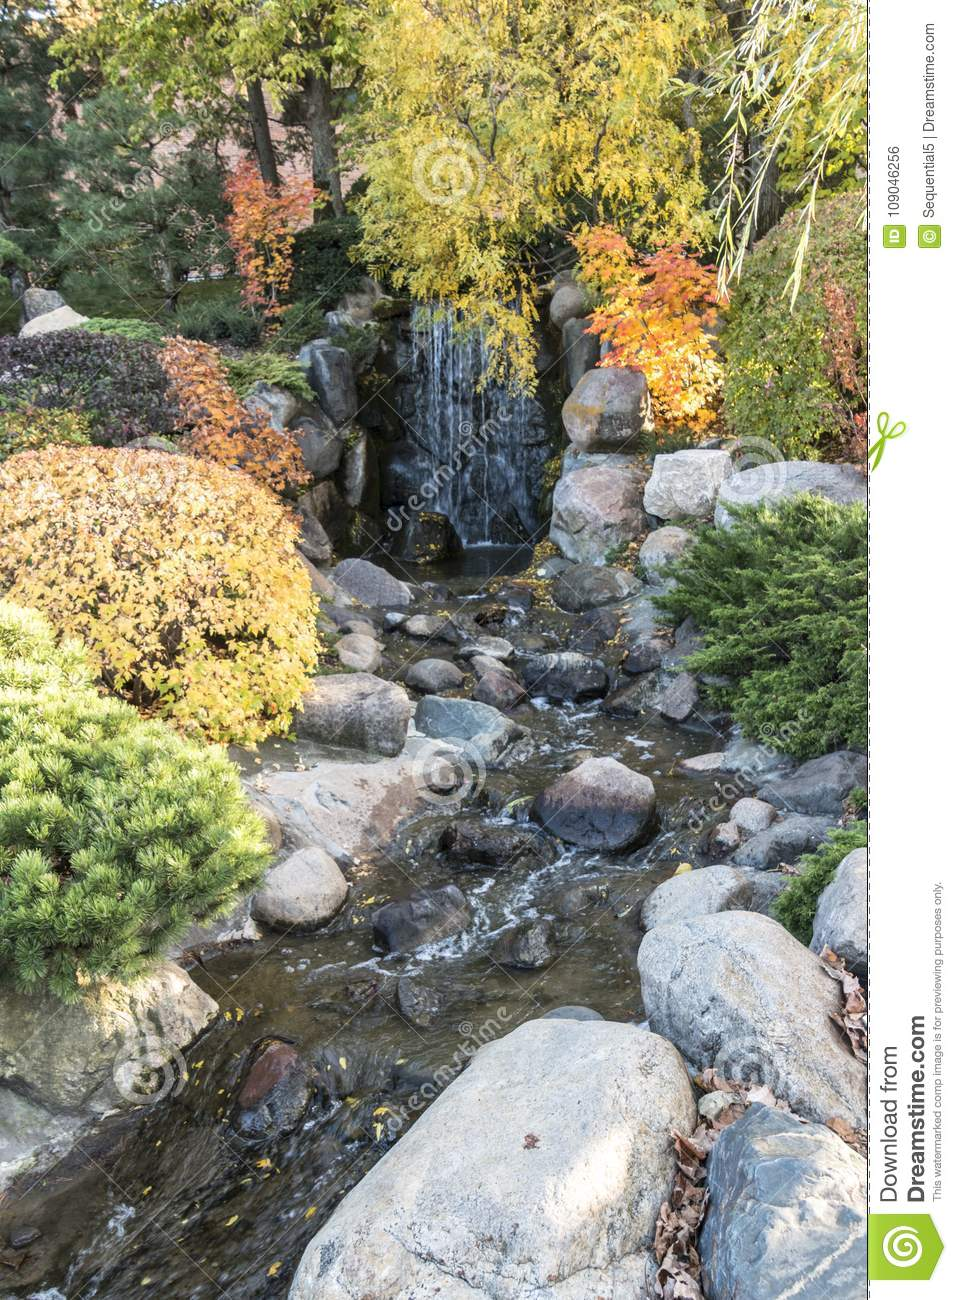 Bloomington, MN/USA - October 22, 2016: A beautiful waterfall and stream at the Japanese Garden at Normandale Community College in Bloomington, Minnesota.